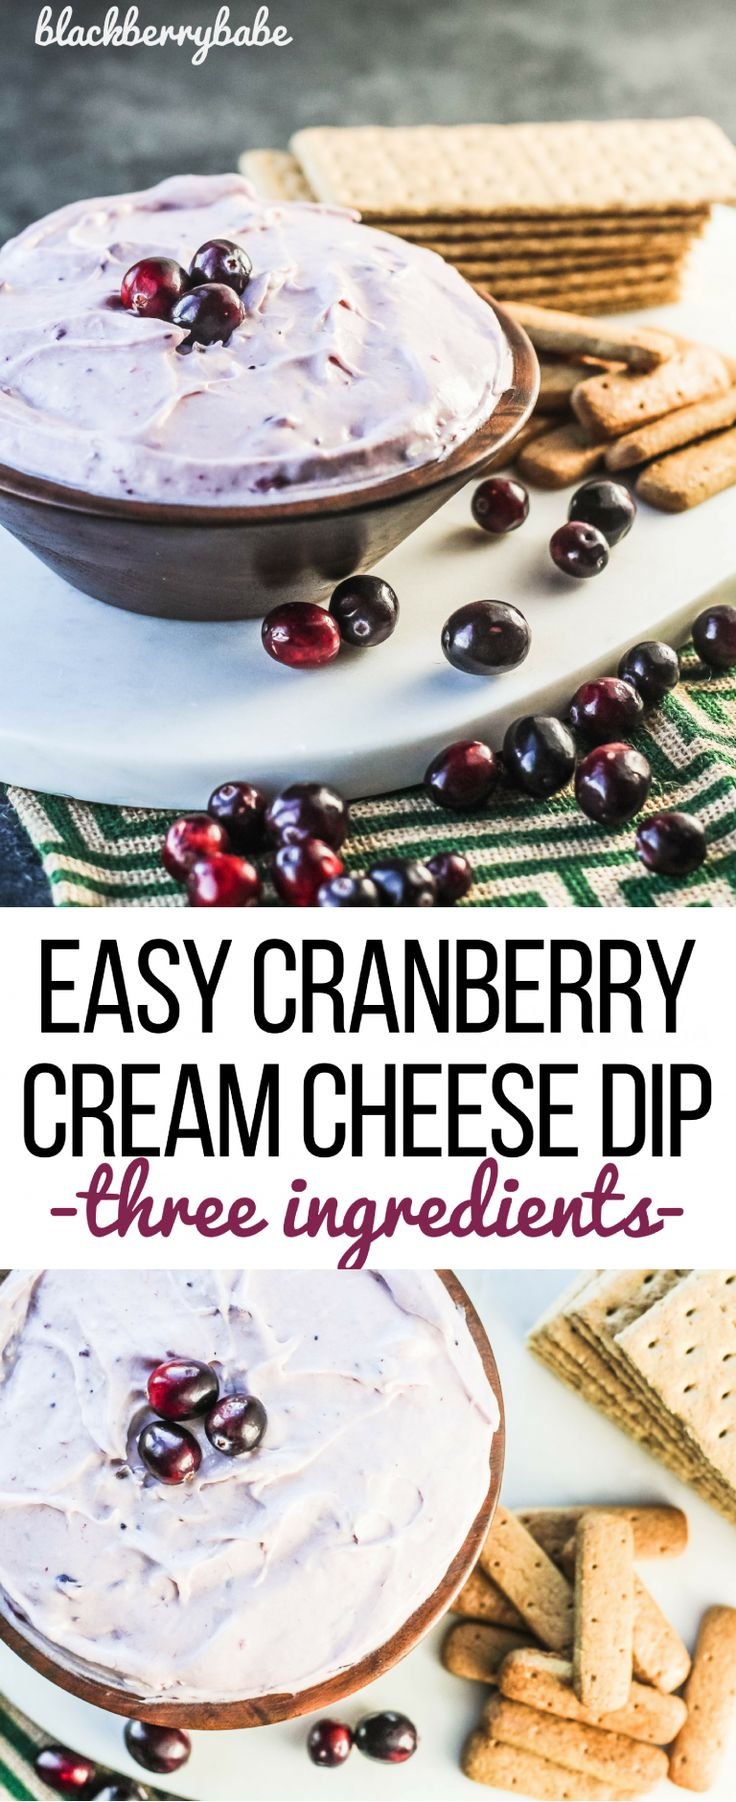 Easy Cranberry Cream Cheese Dip, just three easy ingredients! Perfect appetizer for Thanksgiving or Christmas! AND it uses leftover cranberry sauce!